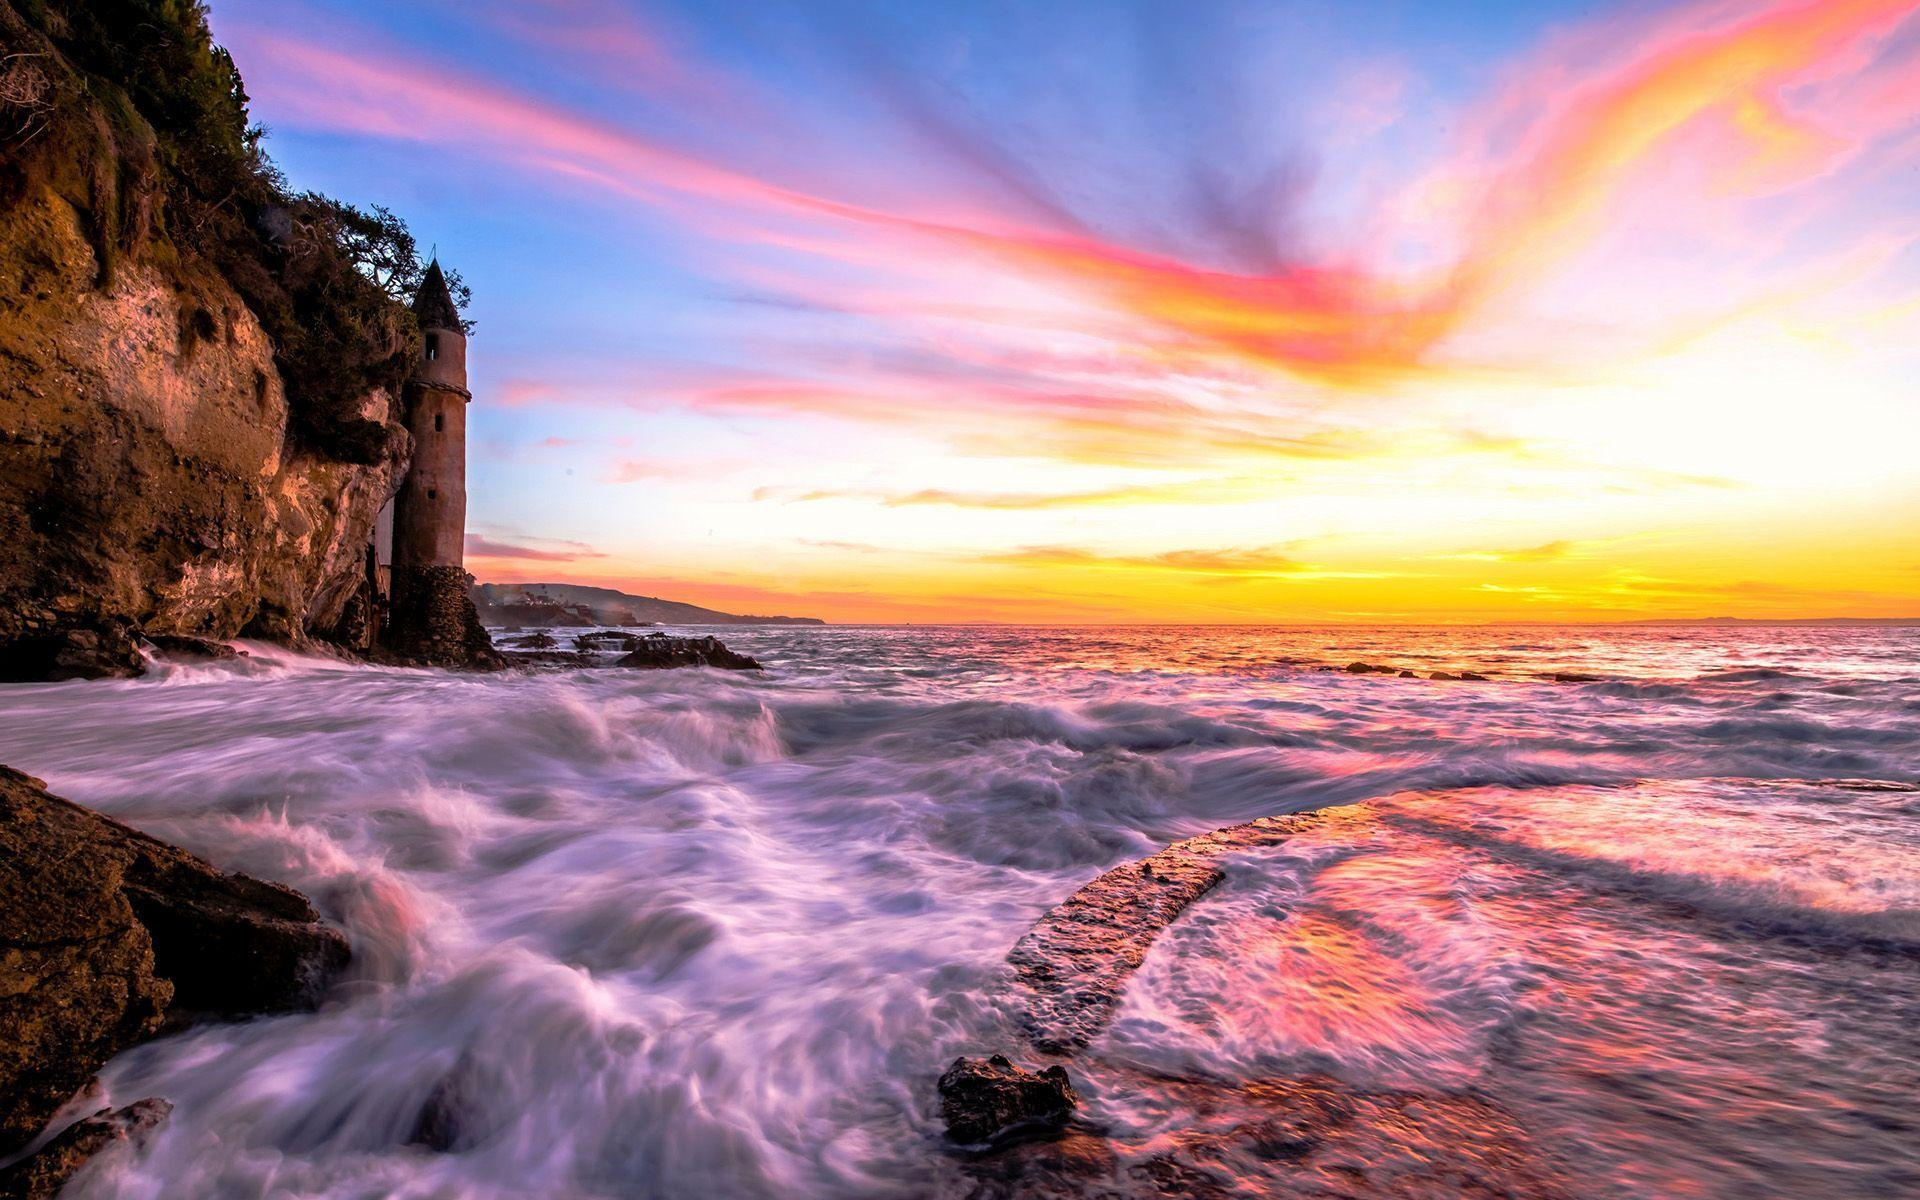 HD Colorful sunset sky Wallpaper  Download Free  149116